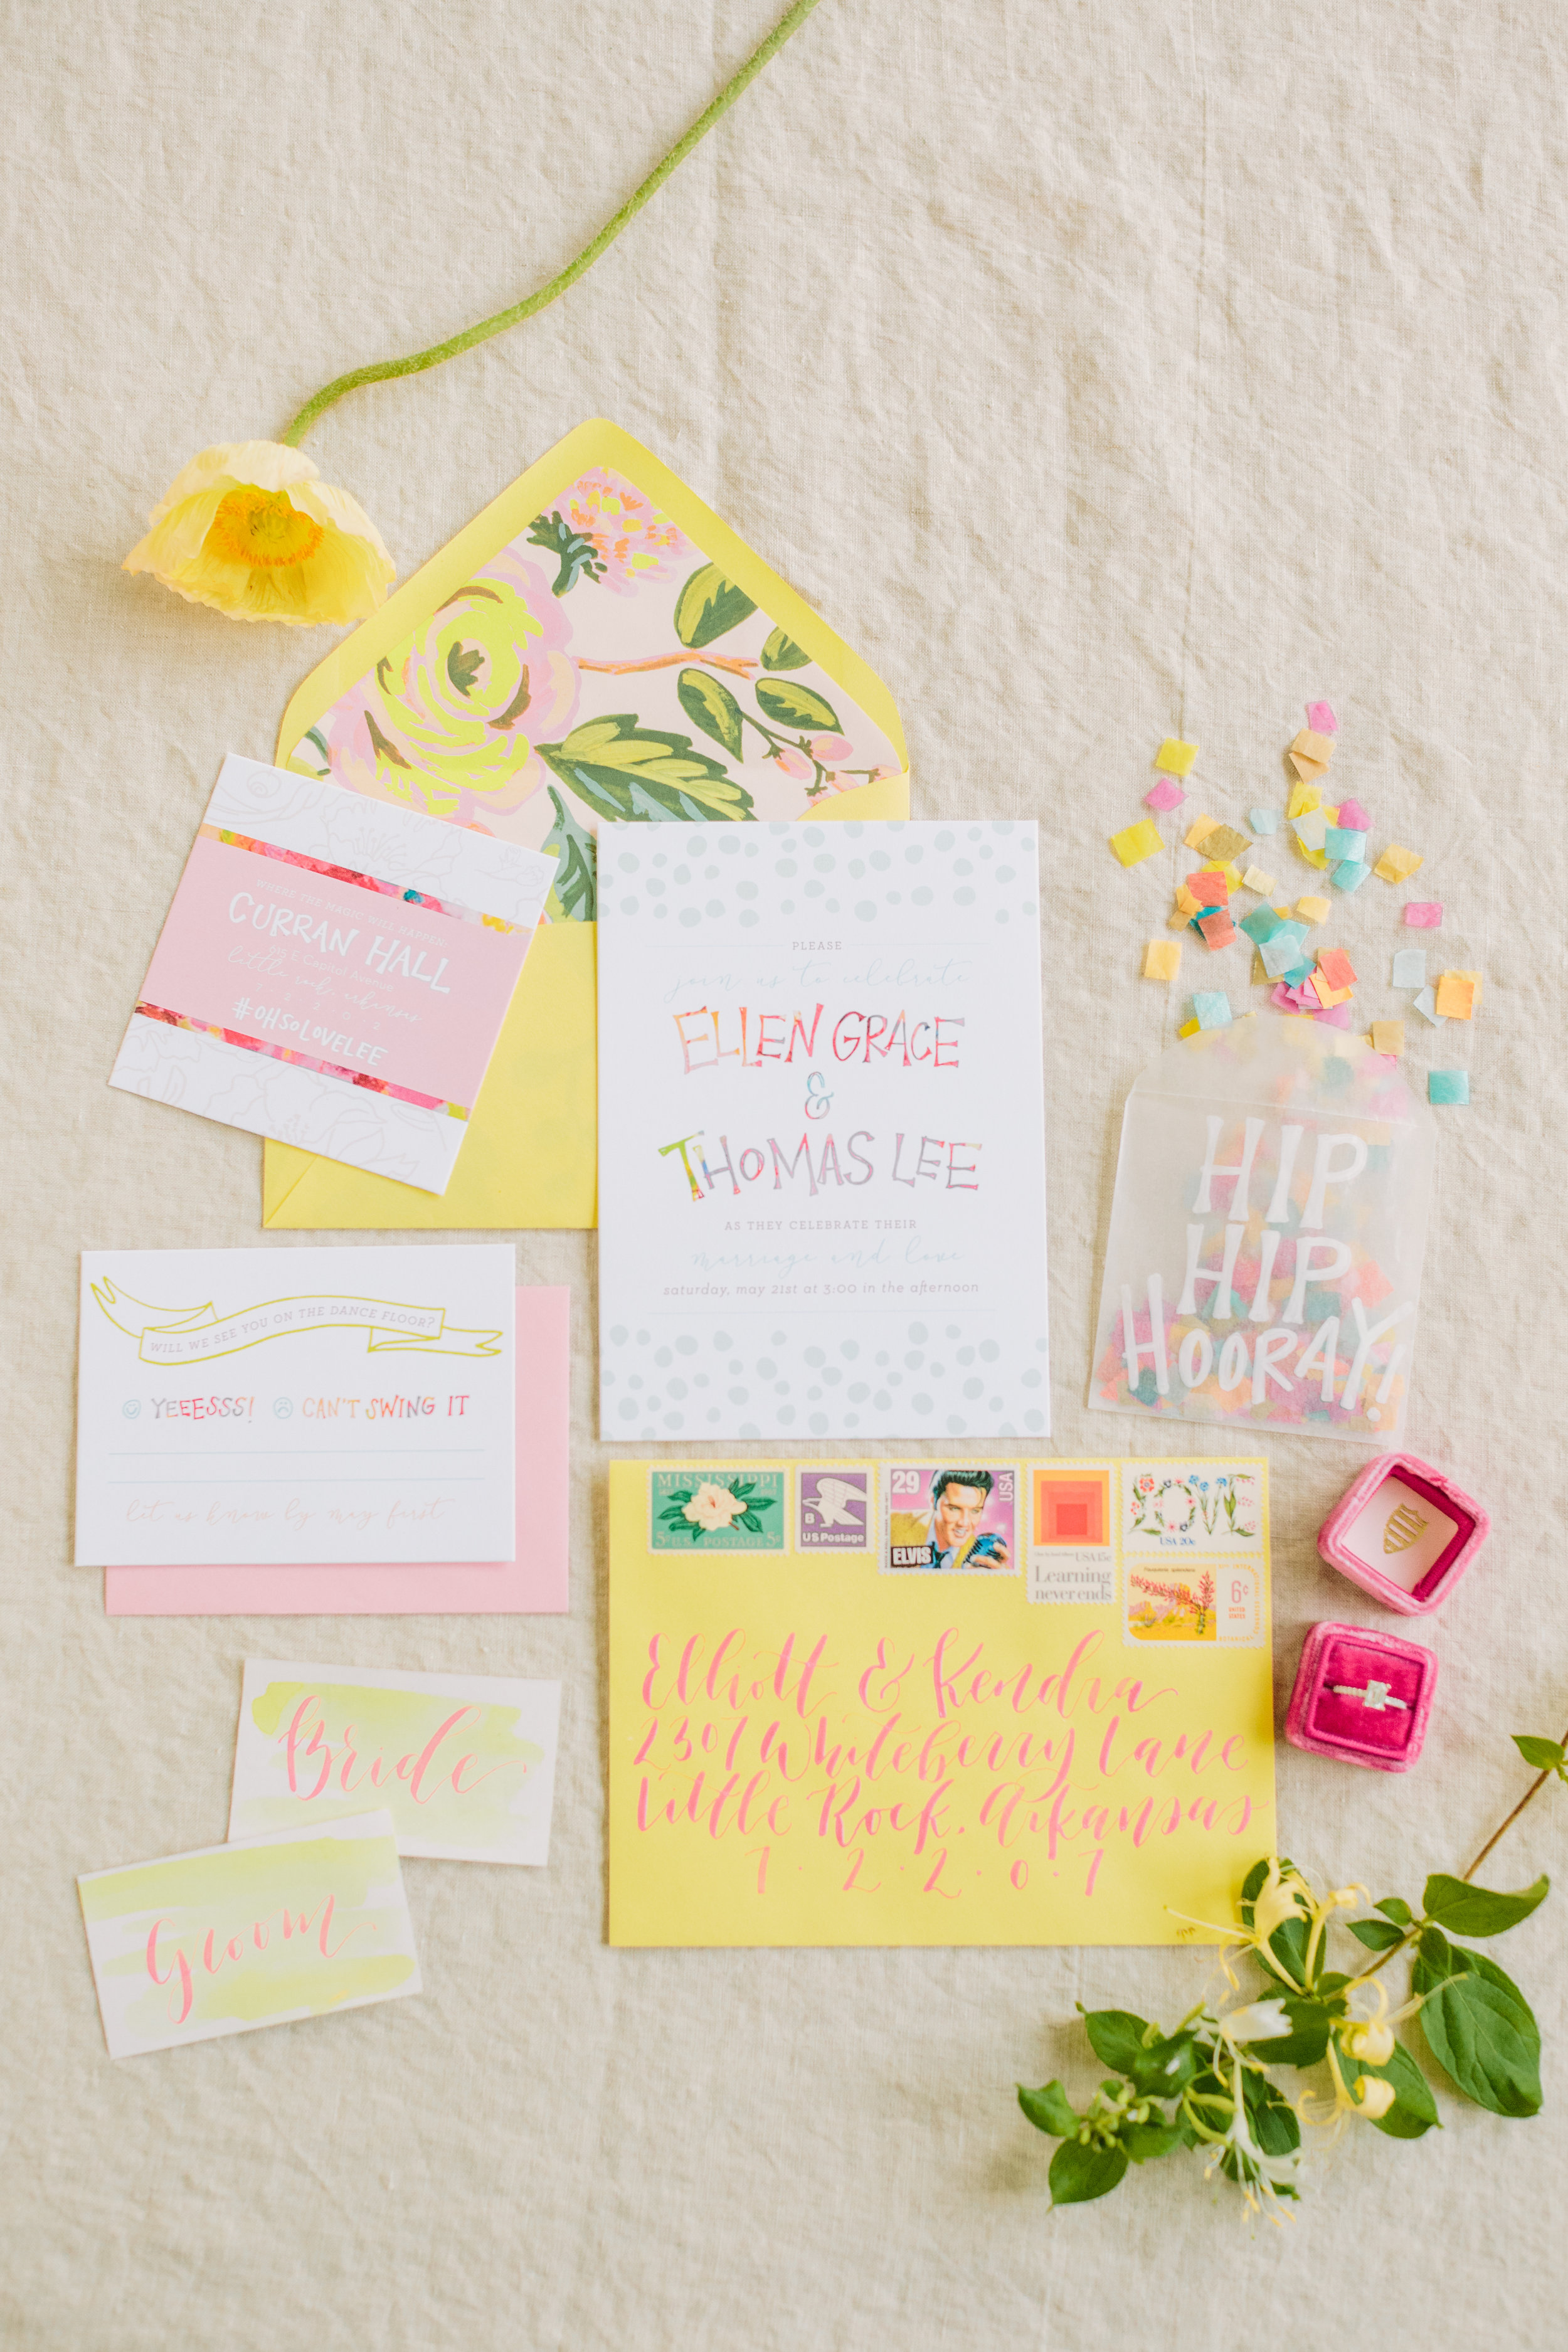 jessica-zimmerman-events-colorful-wedding-summer-invitation.jpg.JPG